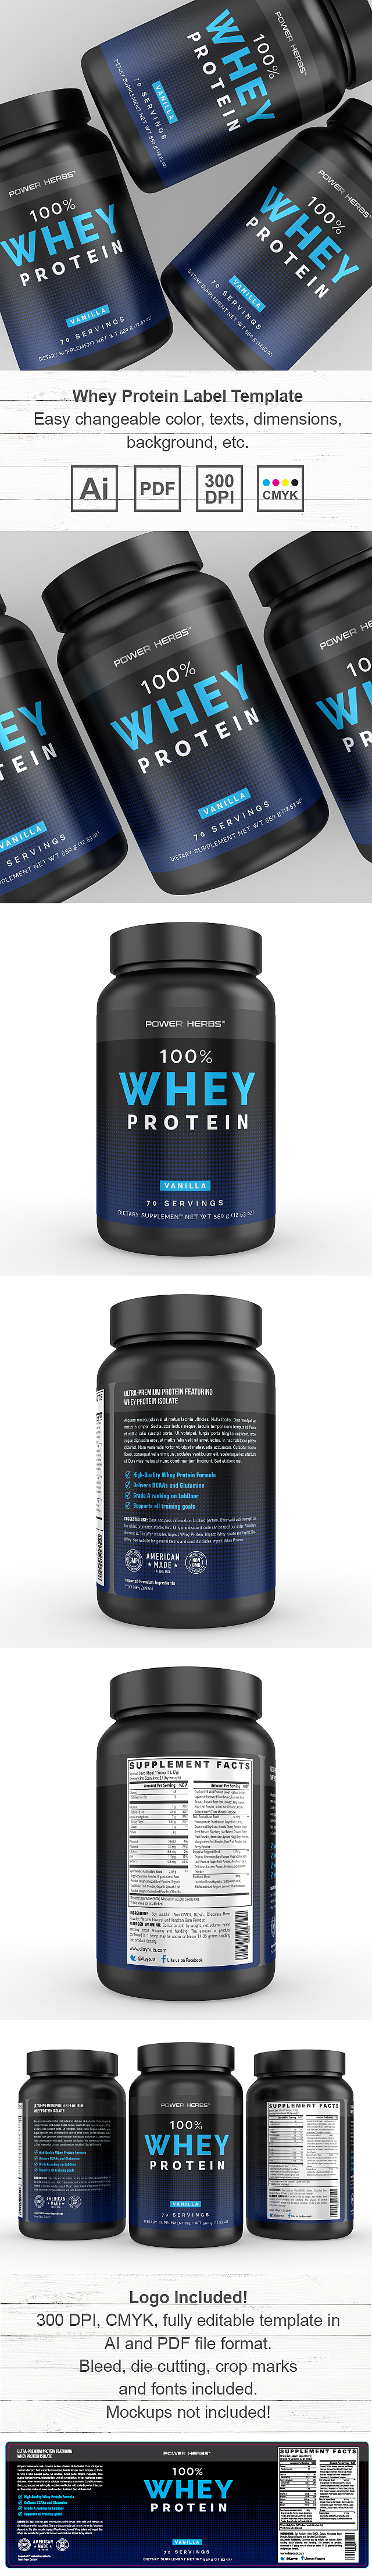 Whey Protein Vanilla Supplement Label Template